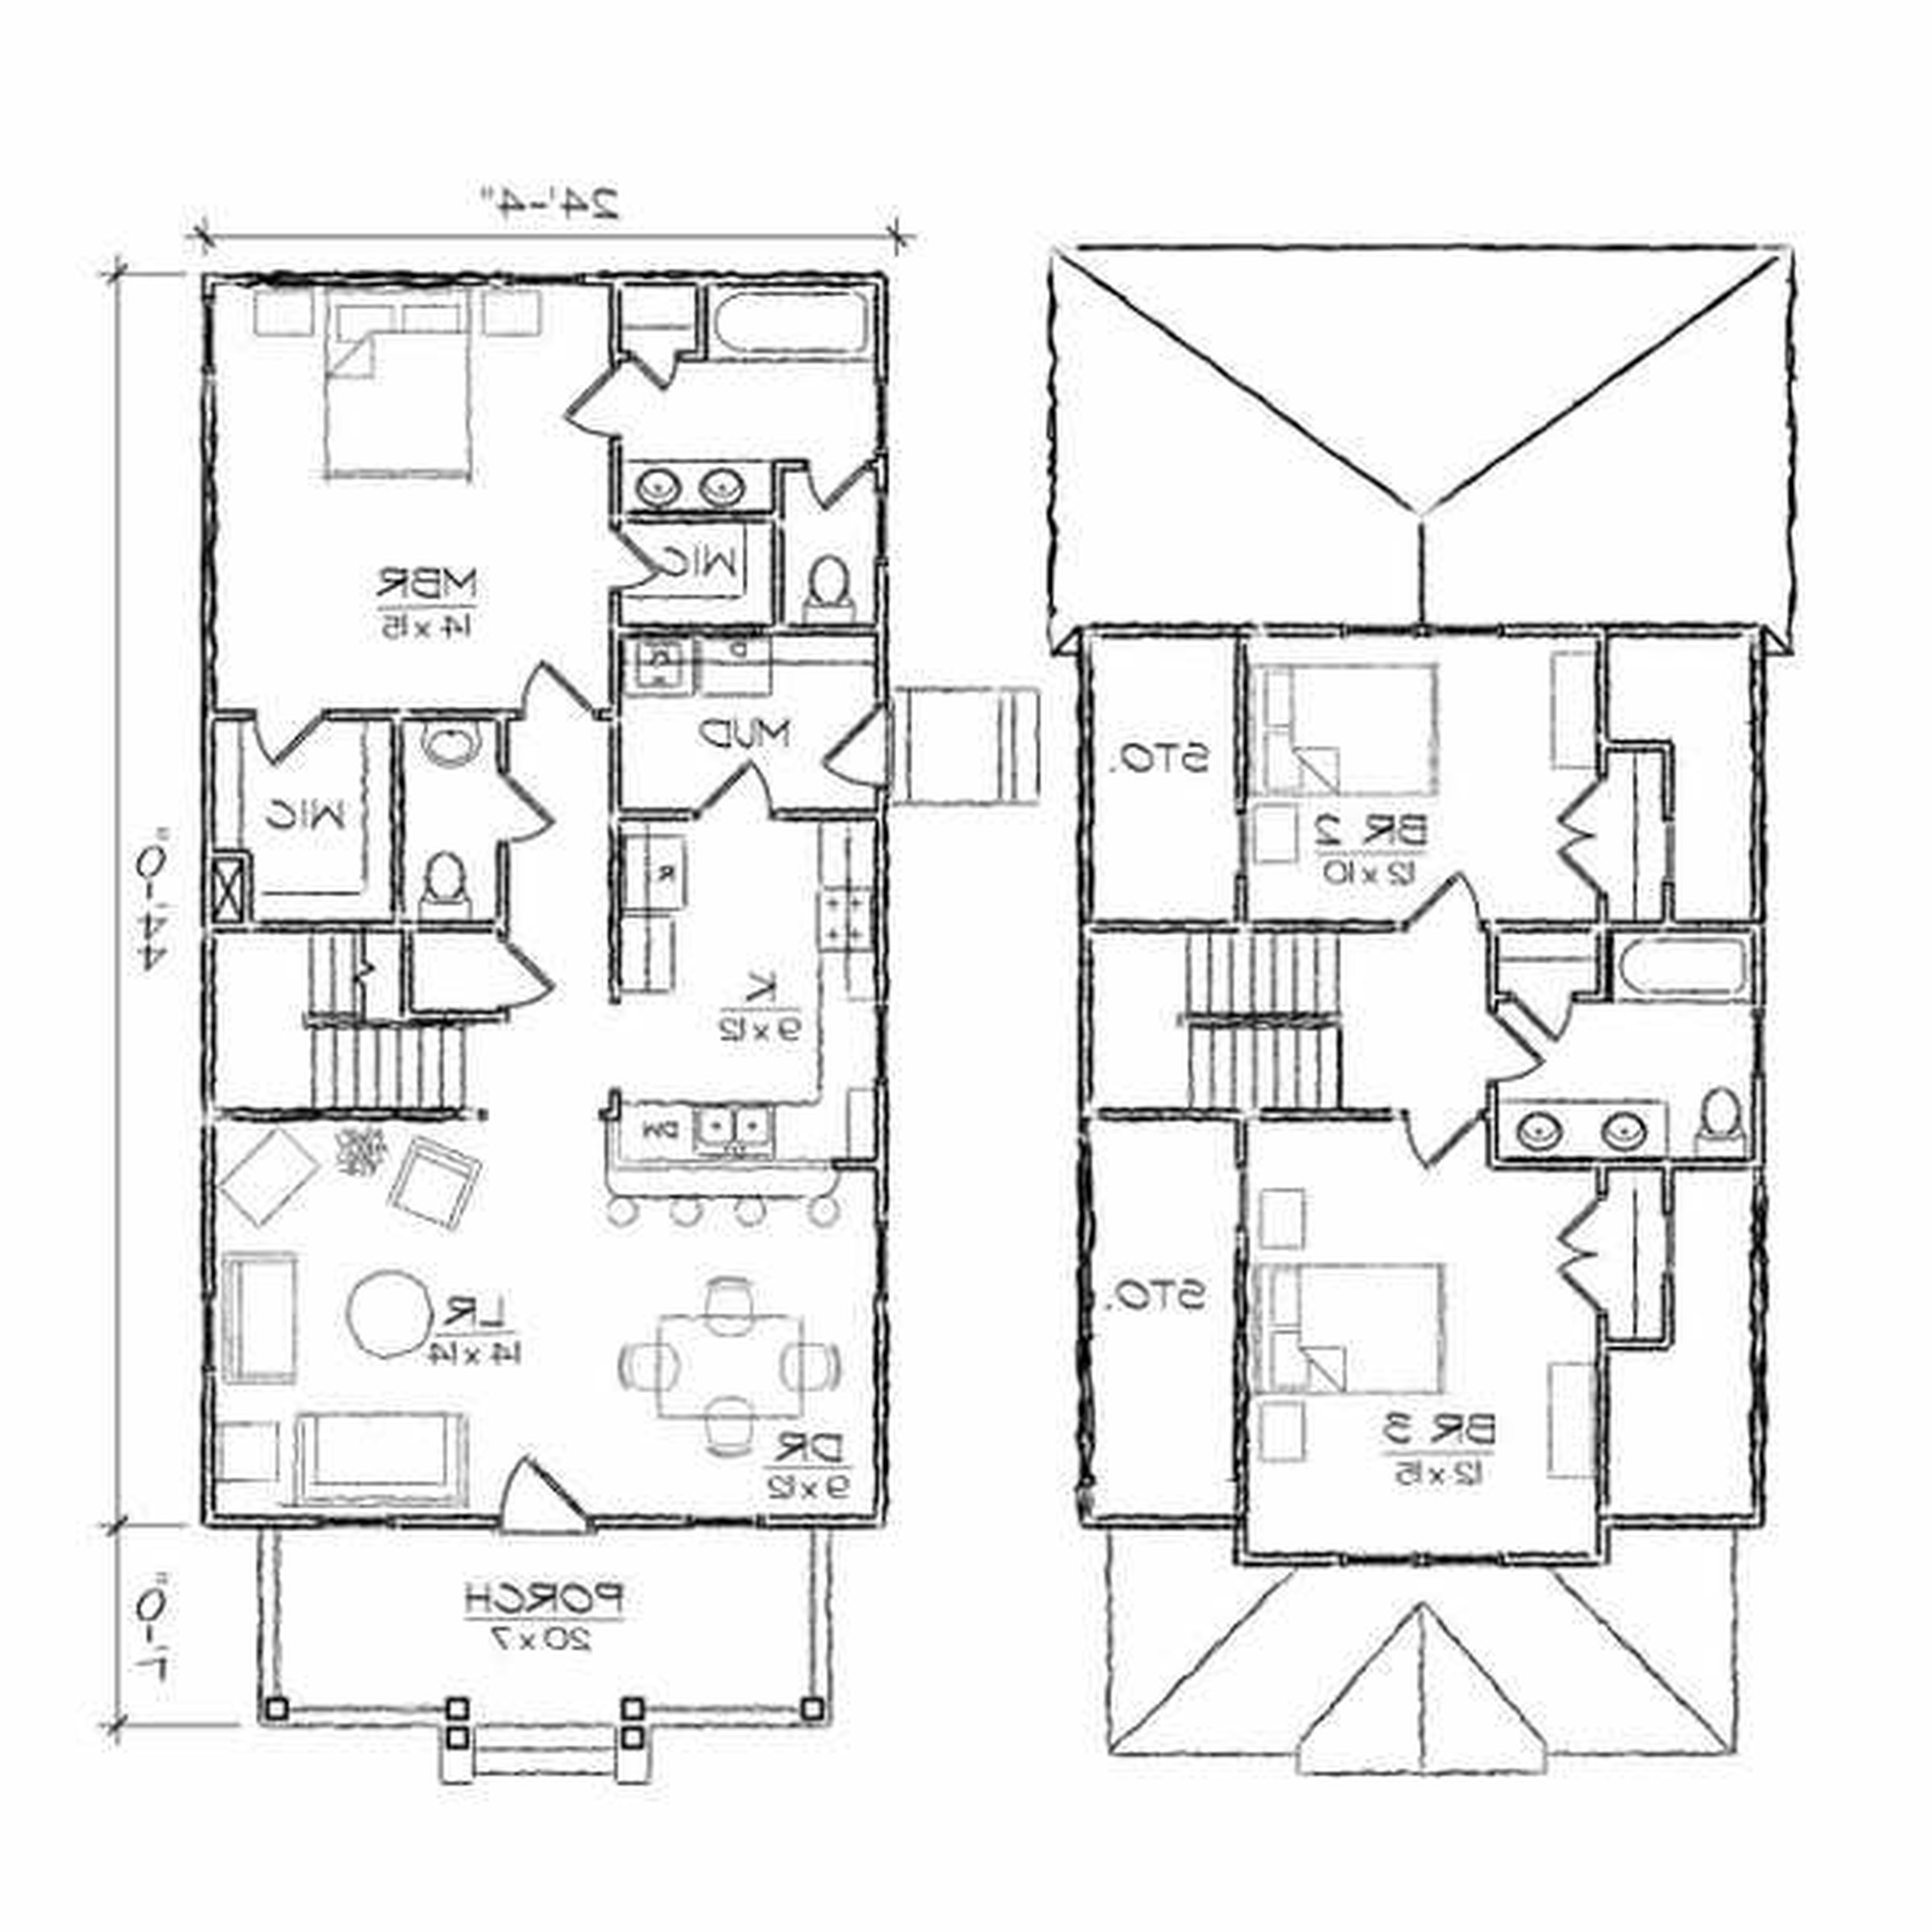 Drawing Online For Free at GetDrawings – Design A House Floor Plan Online Free